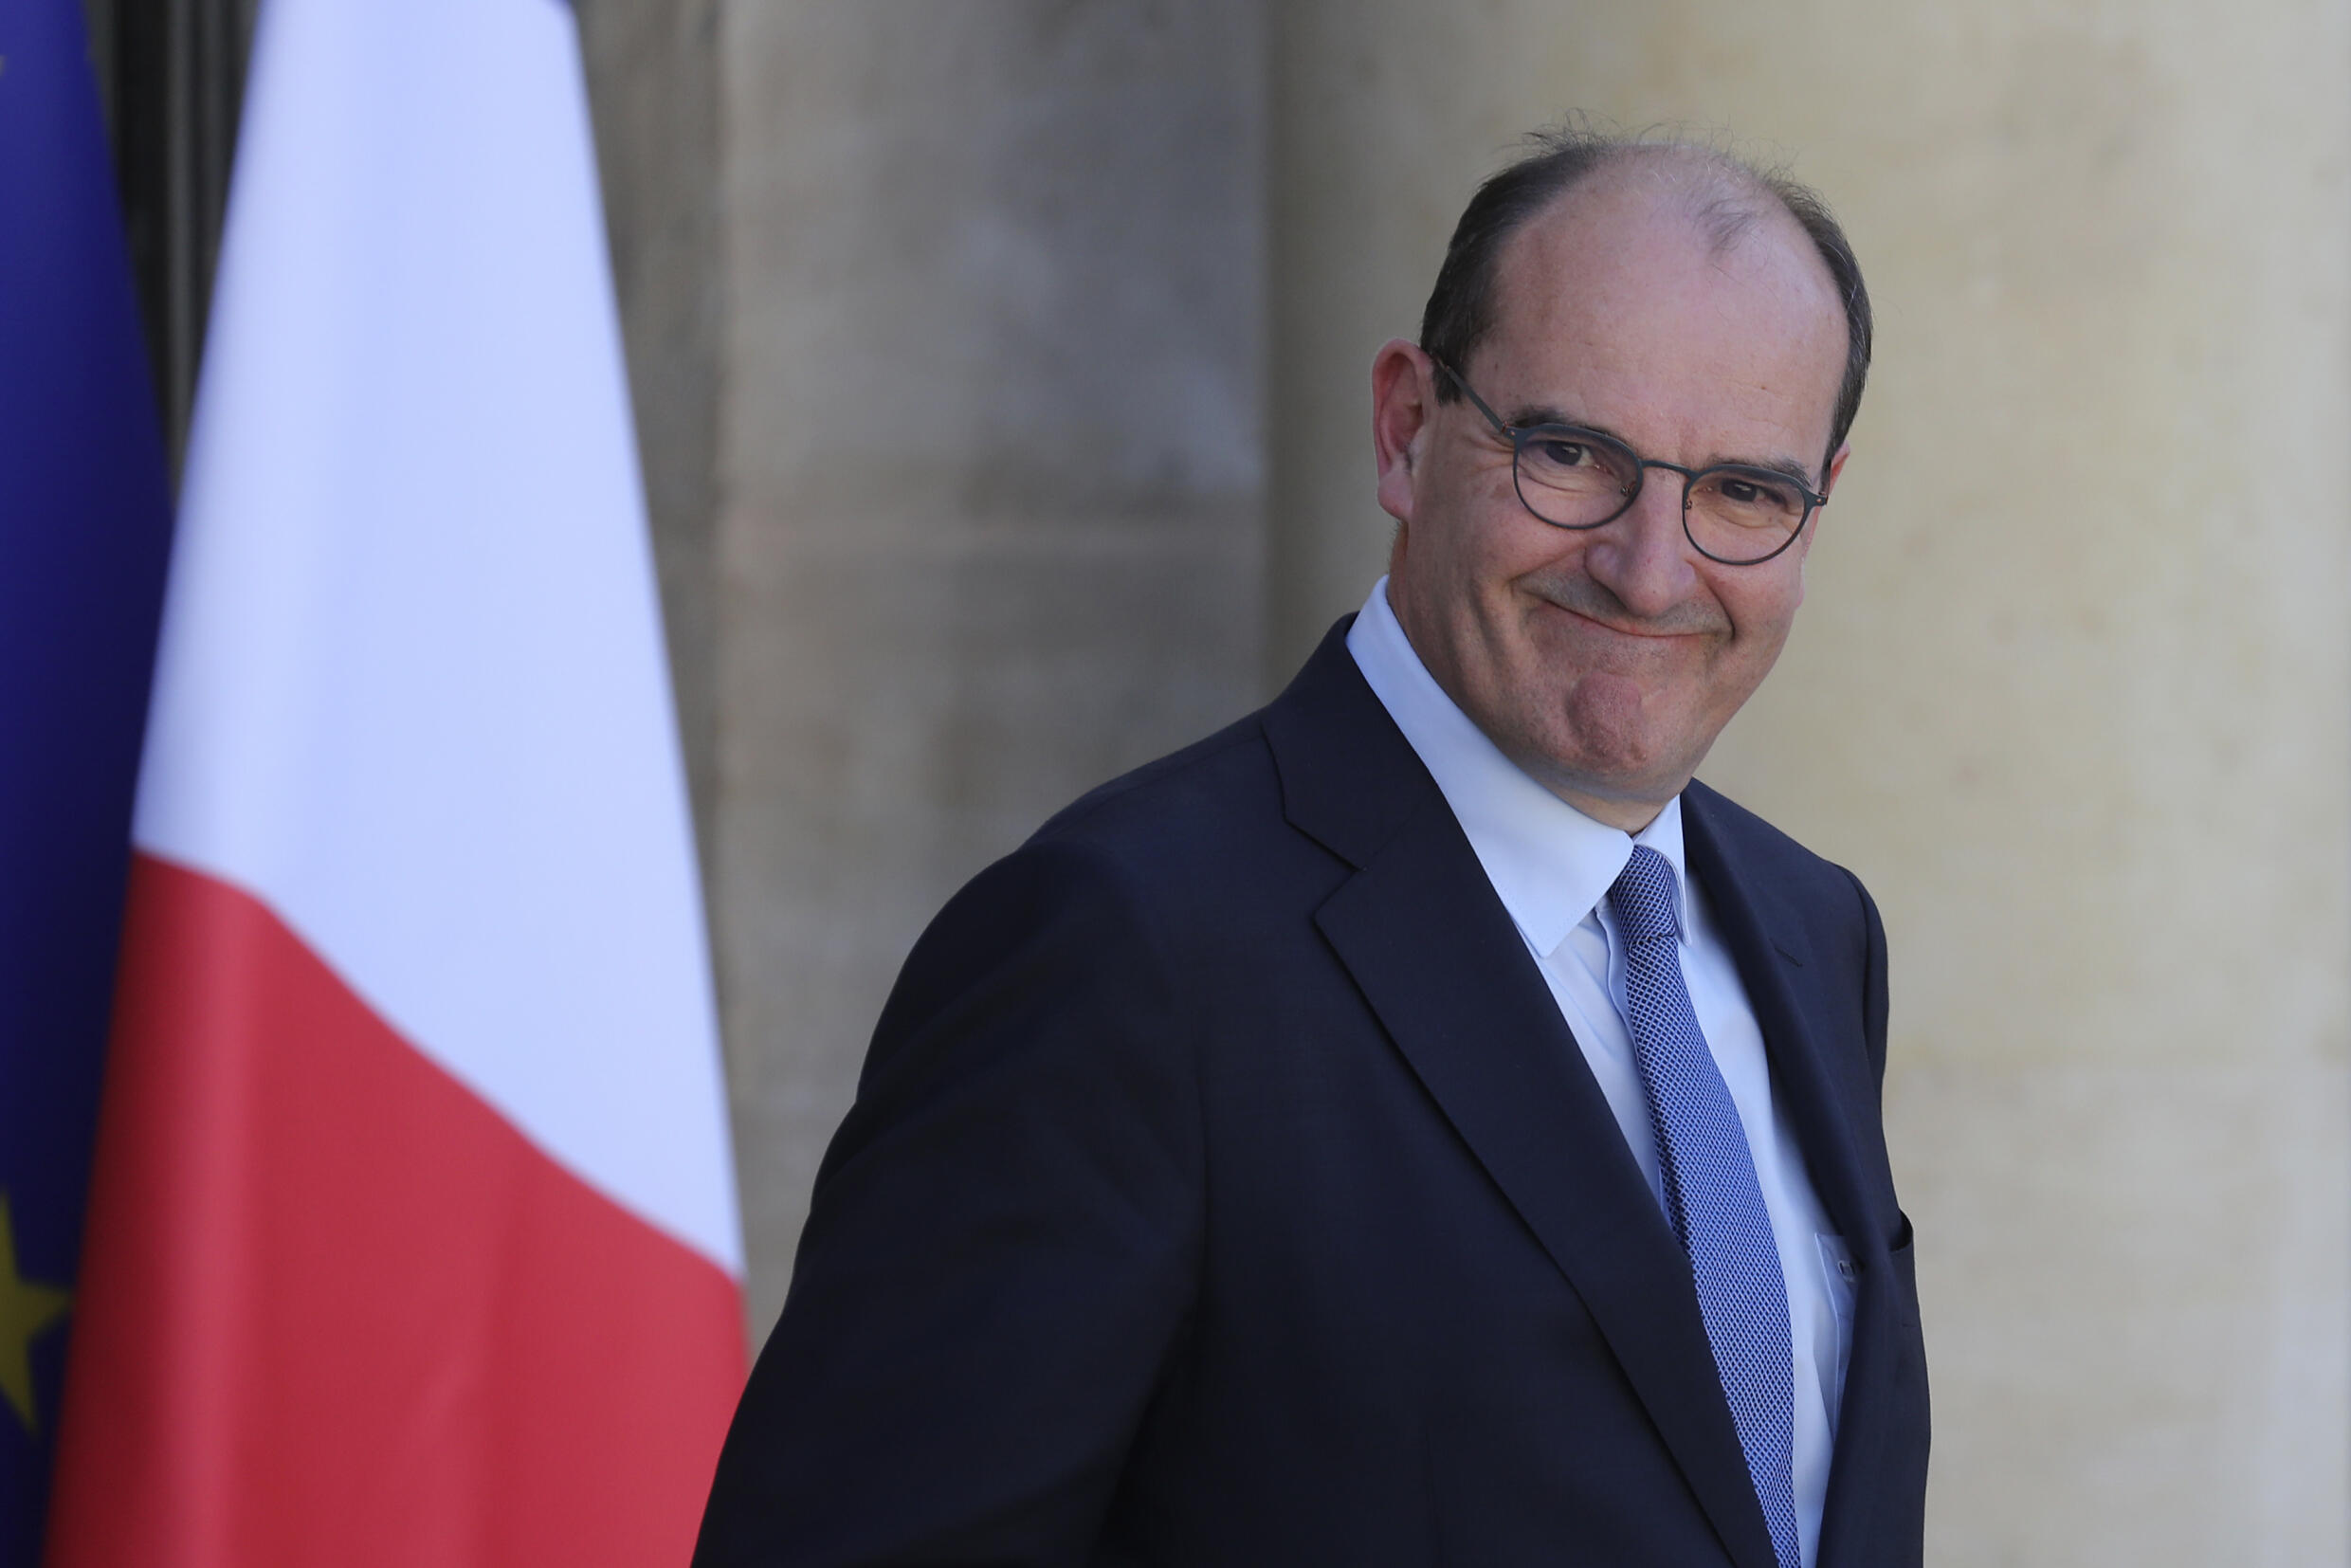 Jean Castex at the Élysée presidential palace on July 7, 2020